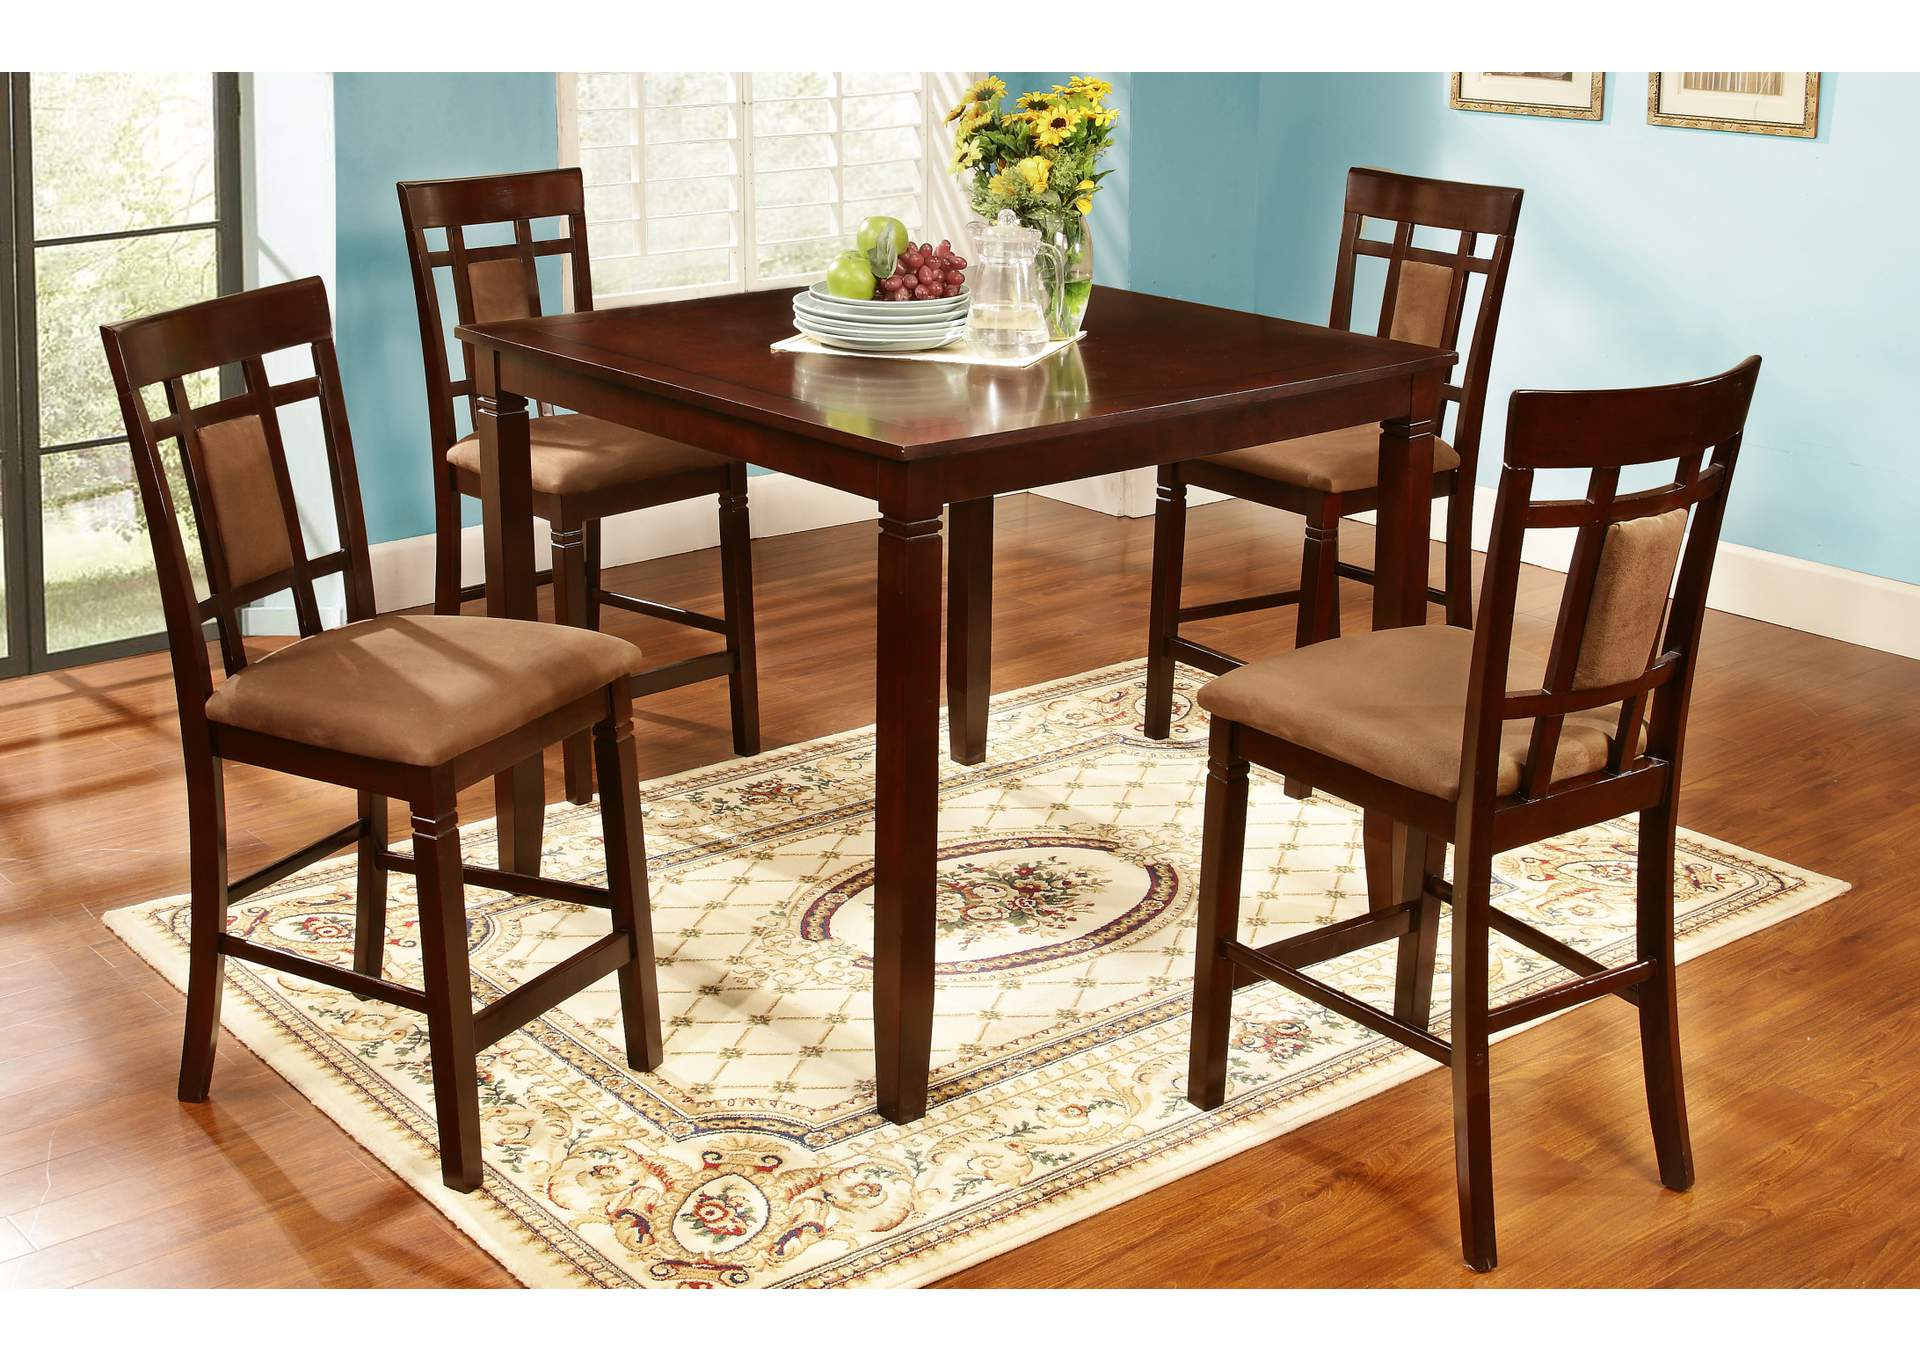 Counter Height Set (Set of 5),Global Trading